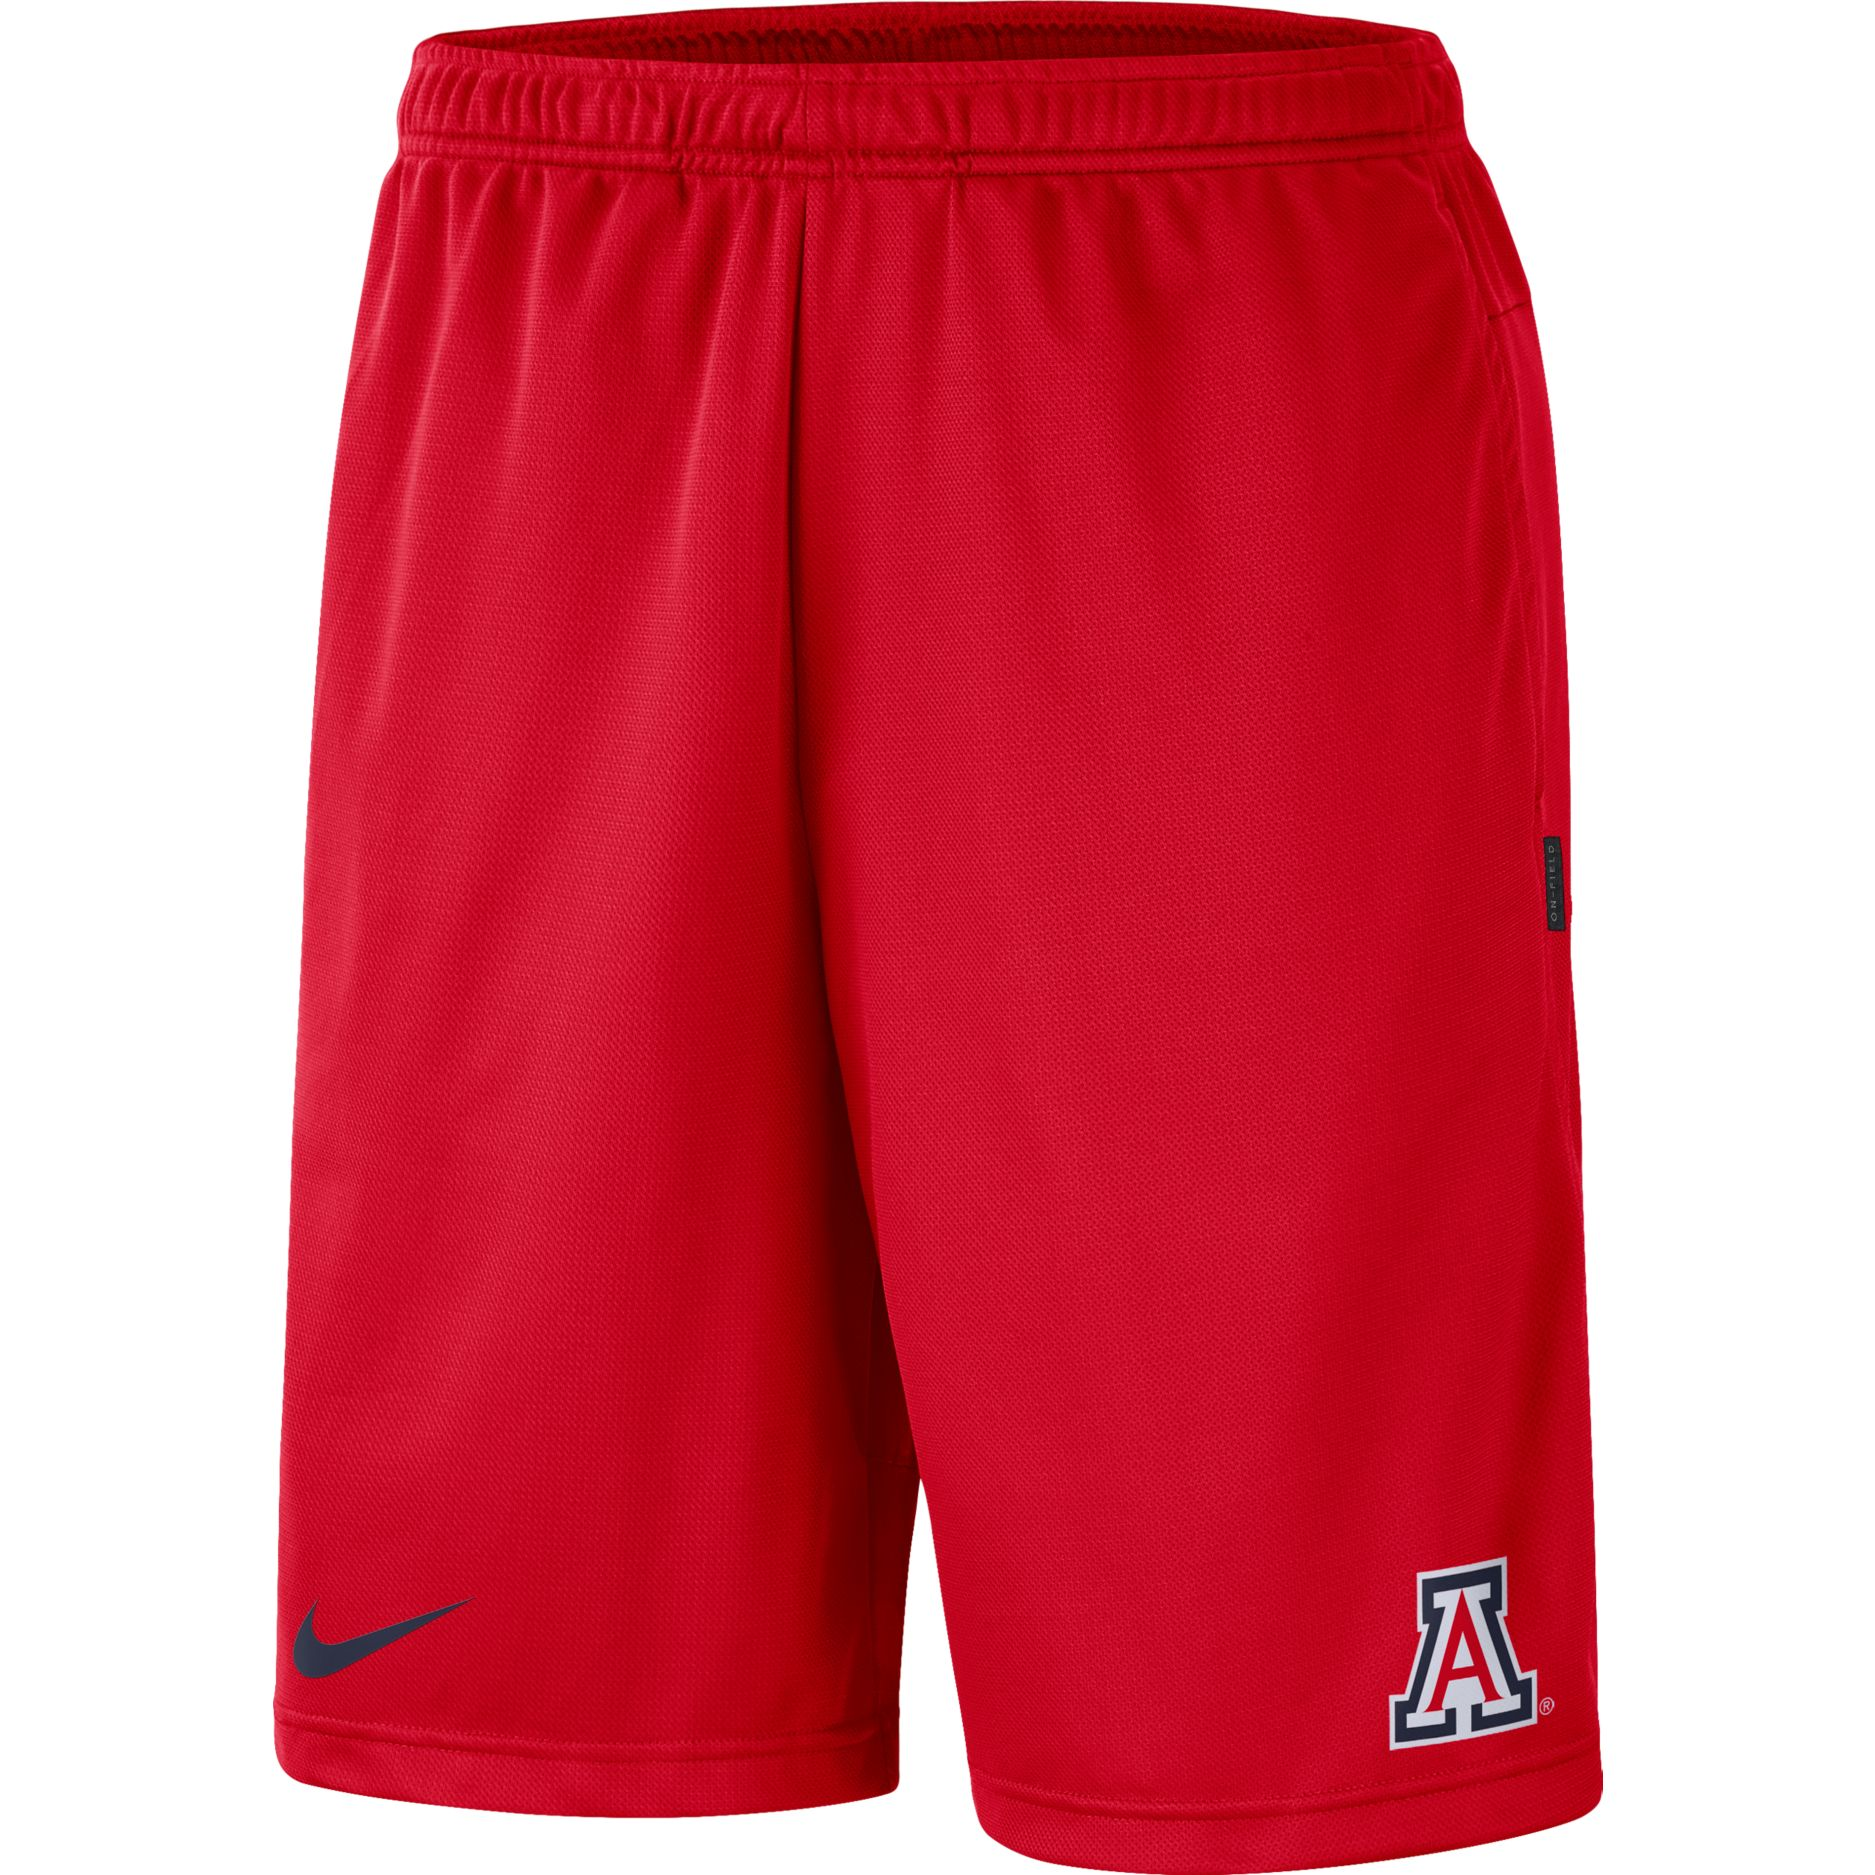 Cover Image For Nike: Arizona Coach Dri-Fit Shorts - Red